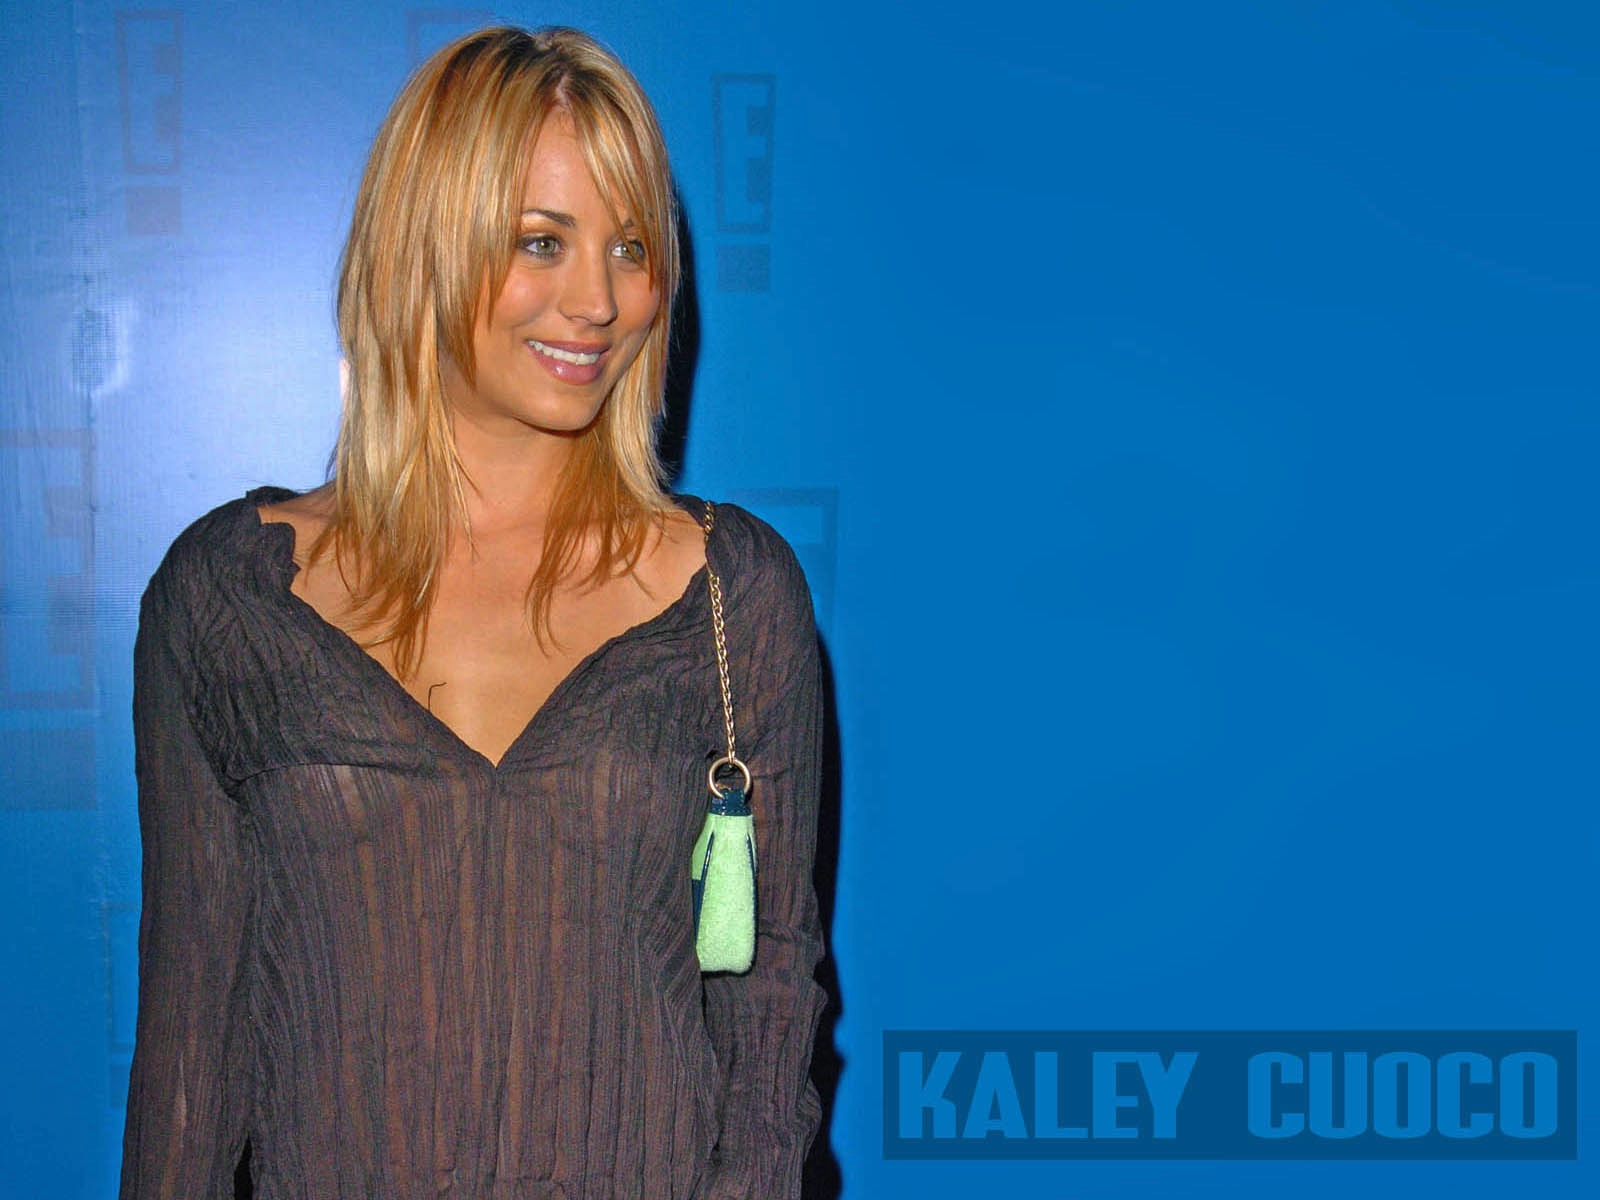 kaley cuoco wallpaper widescreen   Quotekocom 1600x1200